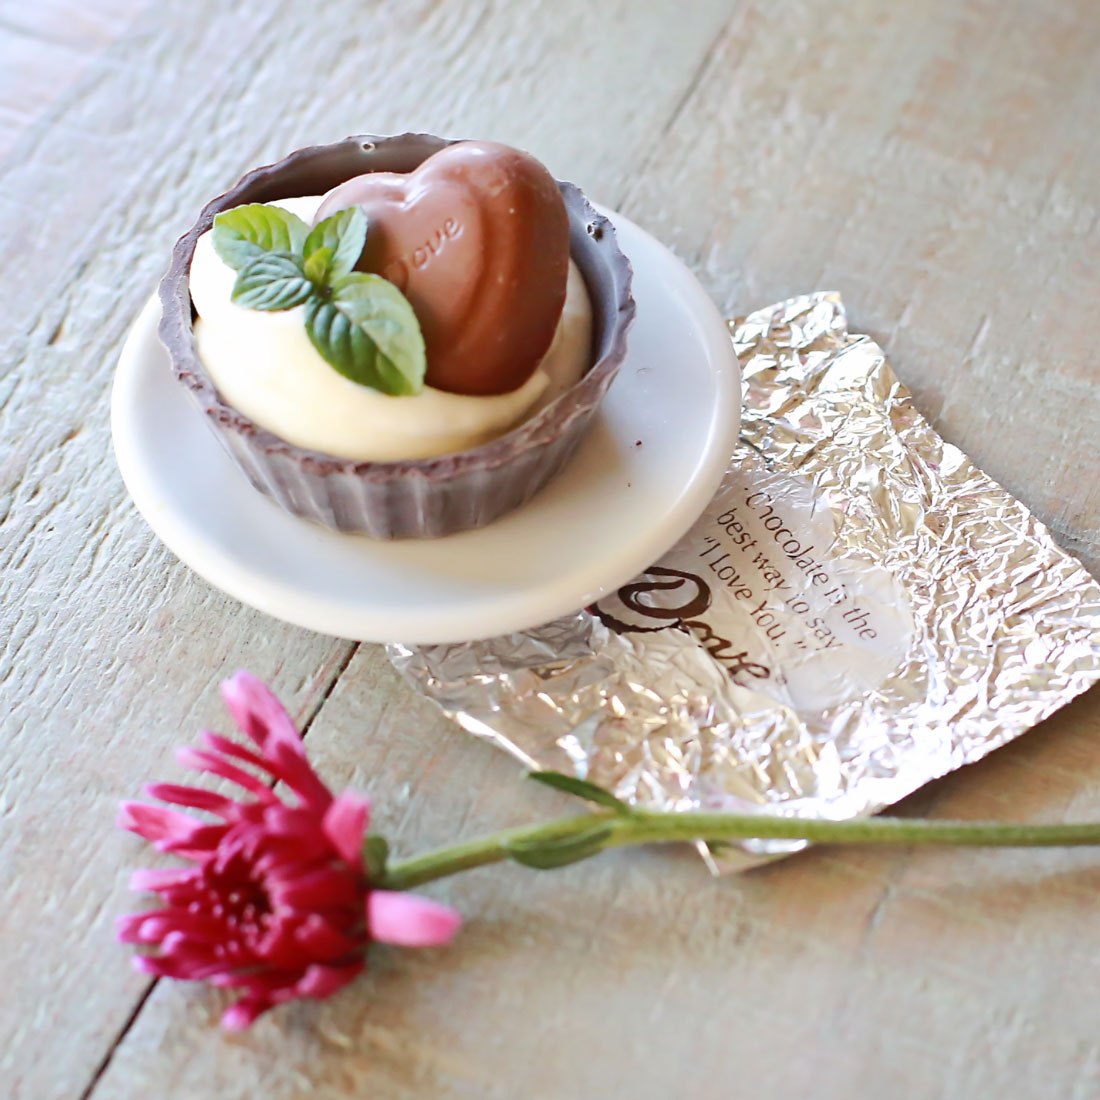 Miniature Chocolate Cheesecakes recipe